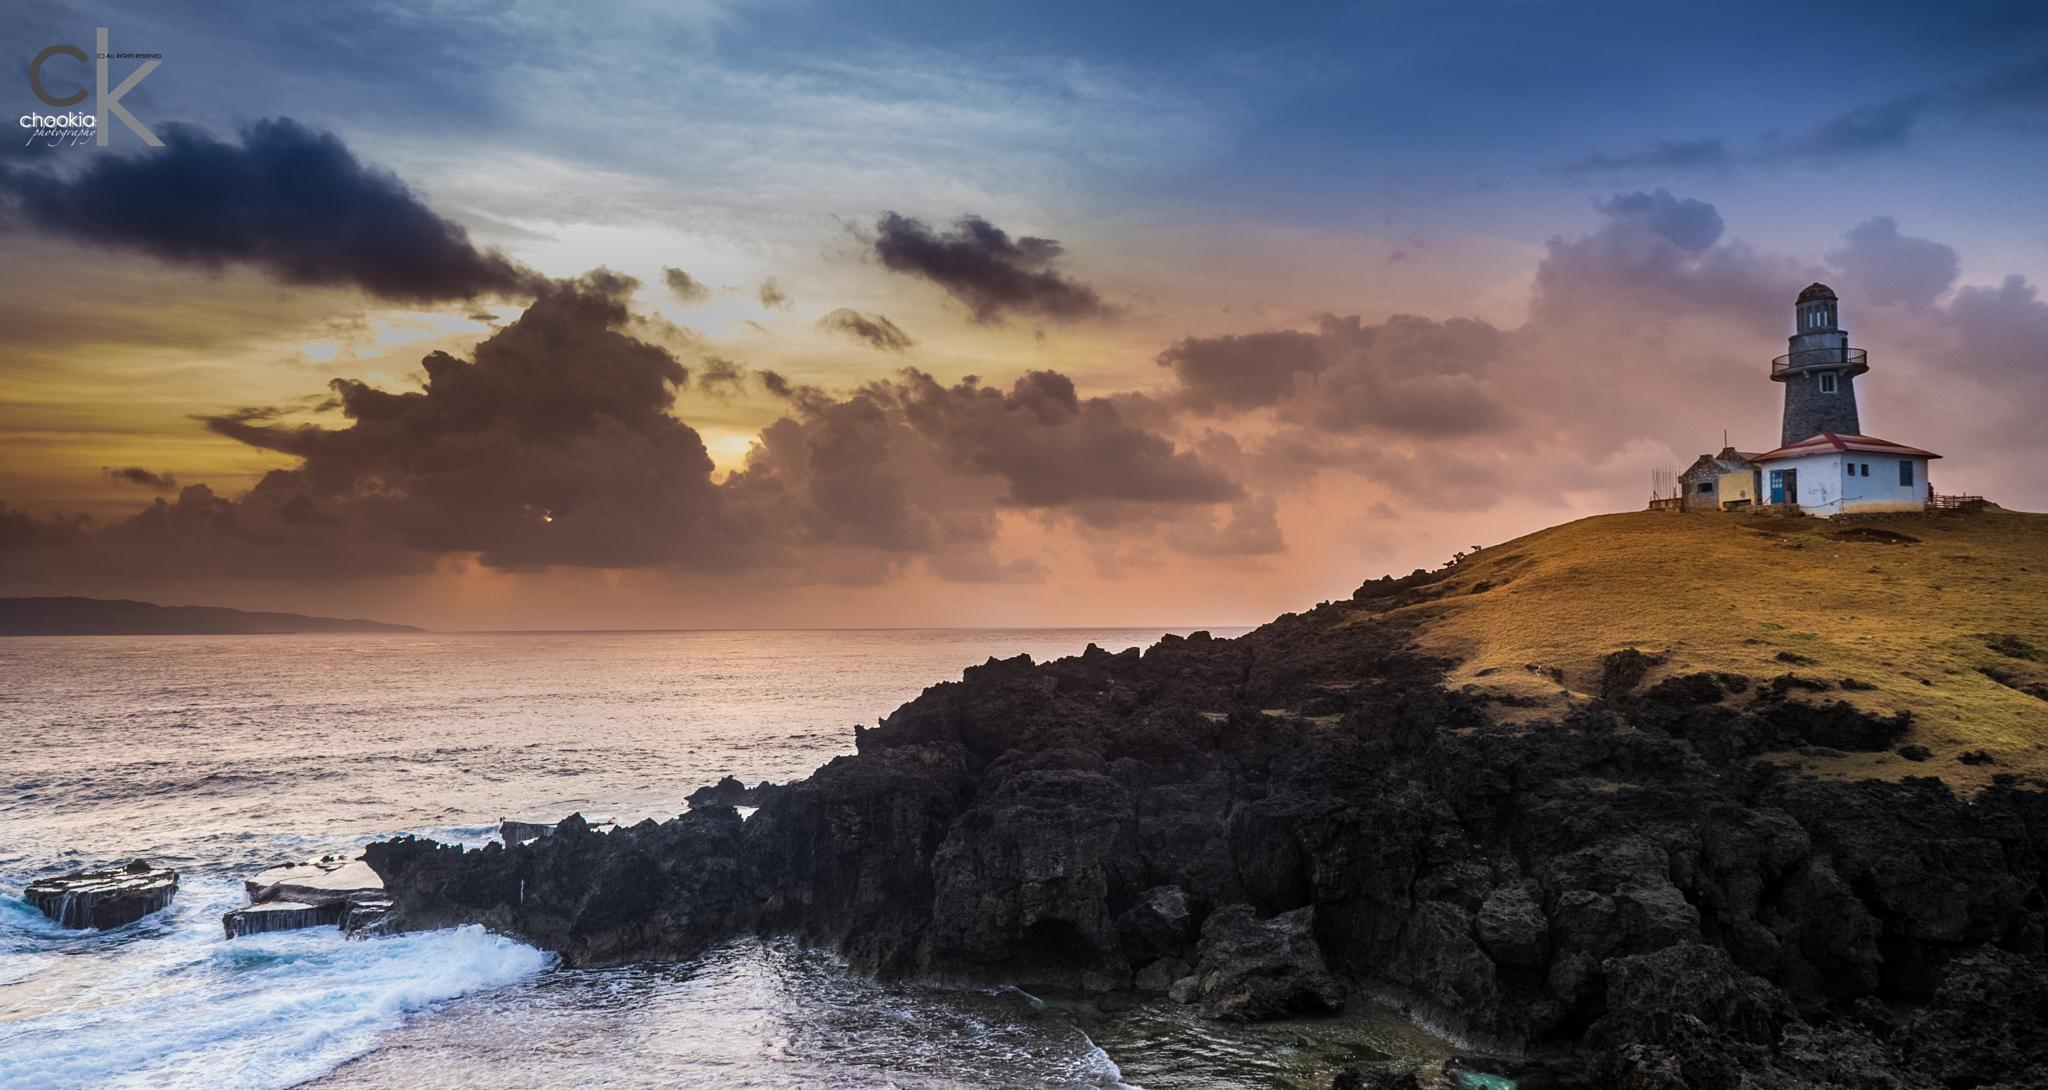 Lighthouse @ Batanes,Phillippines   by chookia